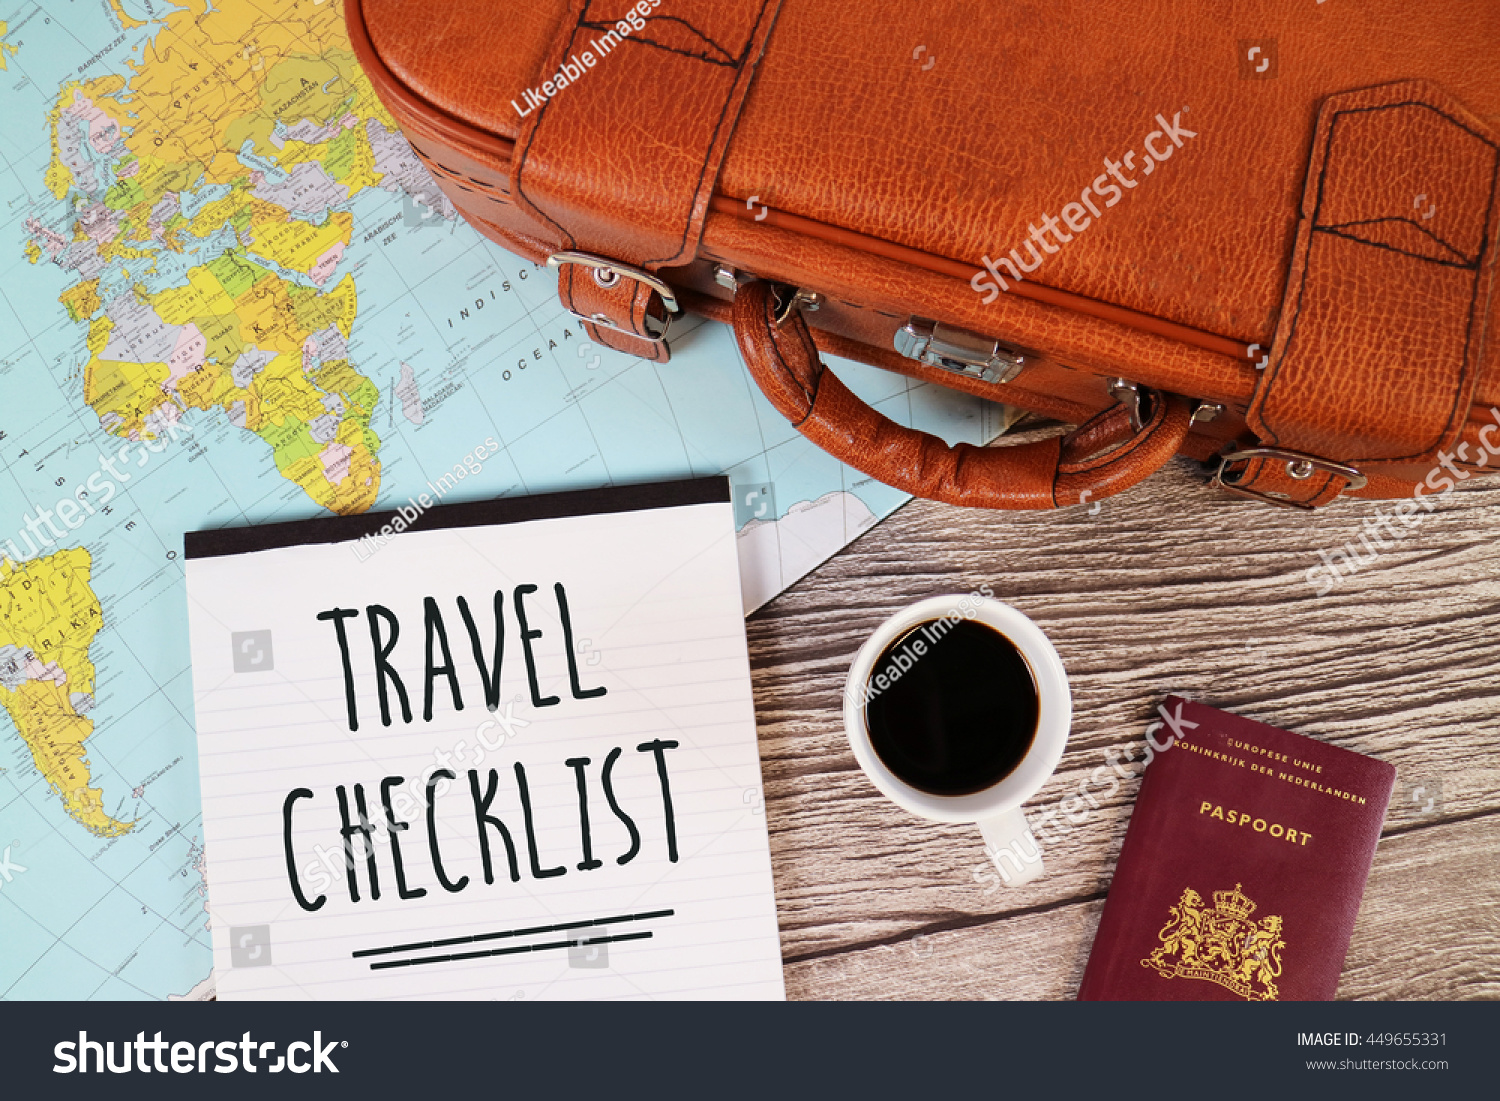 Travel checklist suitcase world map stock photo 449655331 travel checklist suitcase world map stock photo 449655331 shutterstock gumiabroncs Gallery